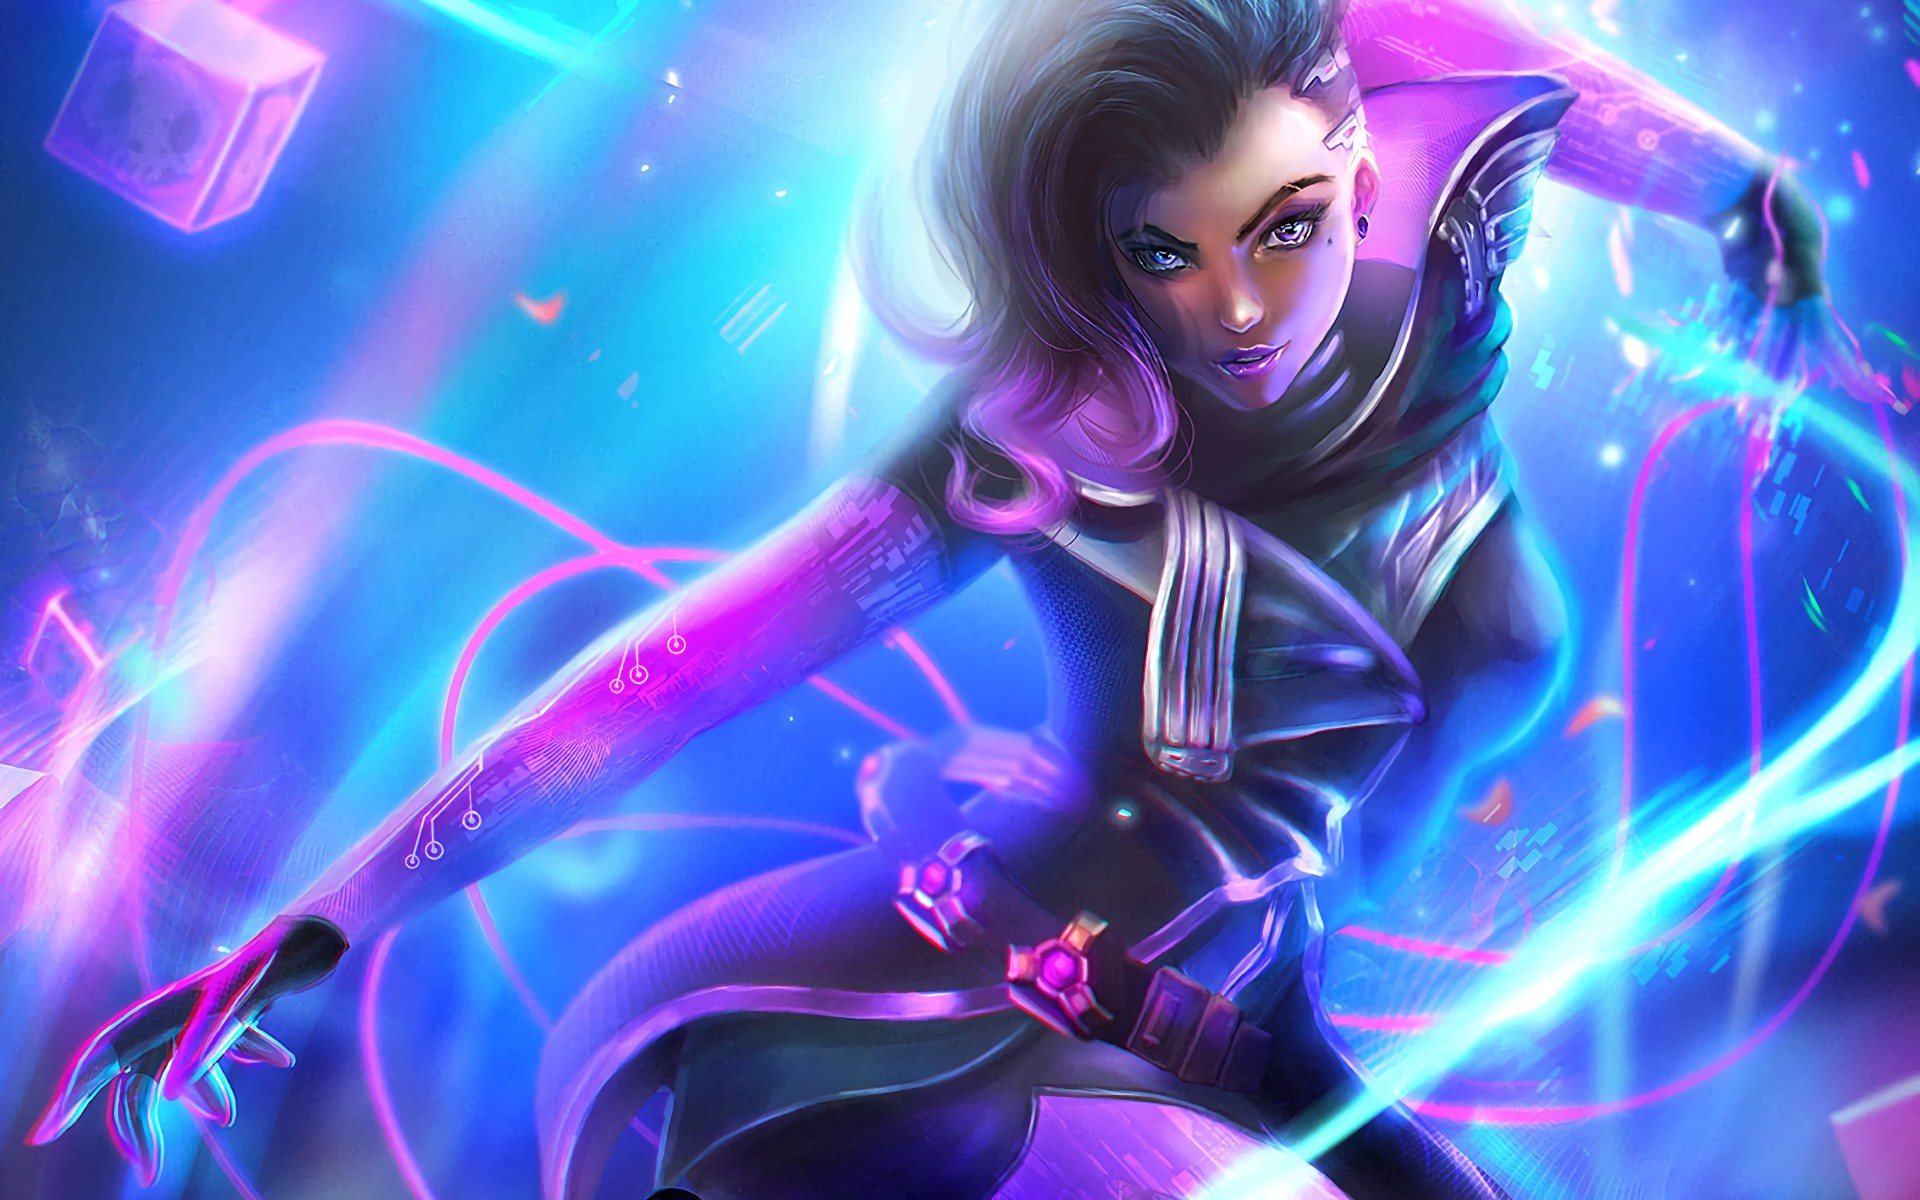 Sombra wallpaper ·① Download free cool High Resolution